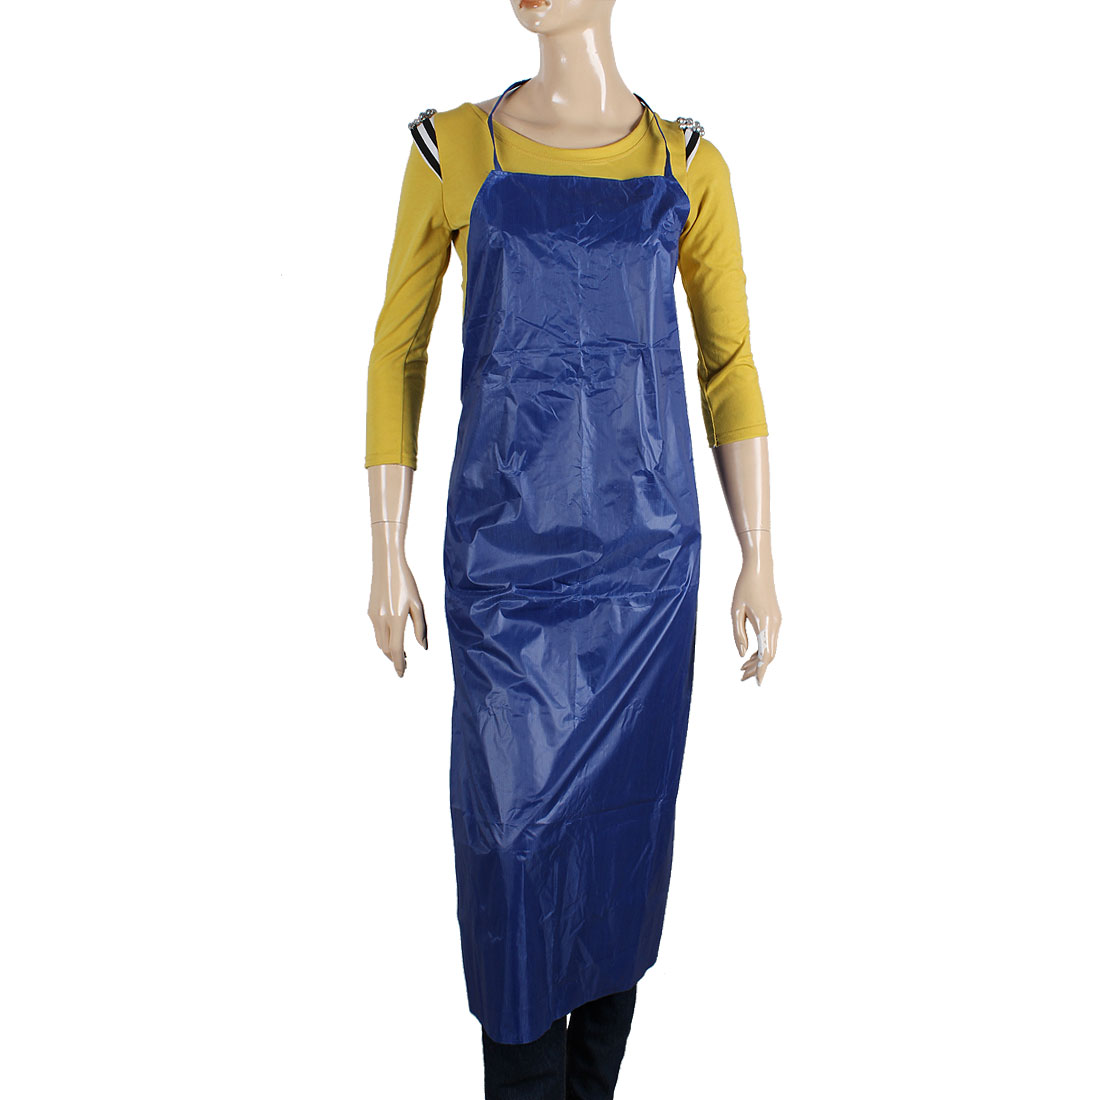 Kitchen Self Tie Plastic Body Oil Protective Apron Blue